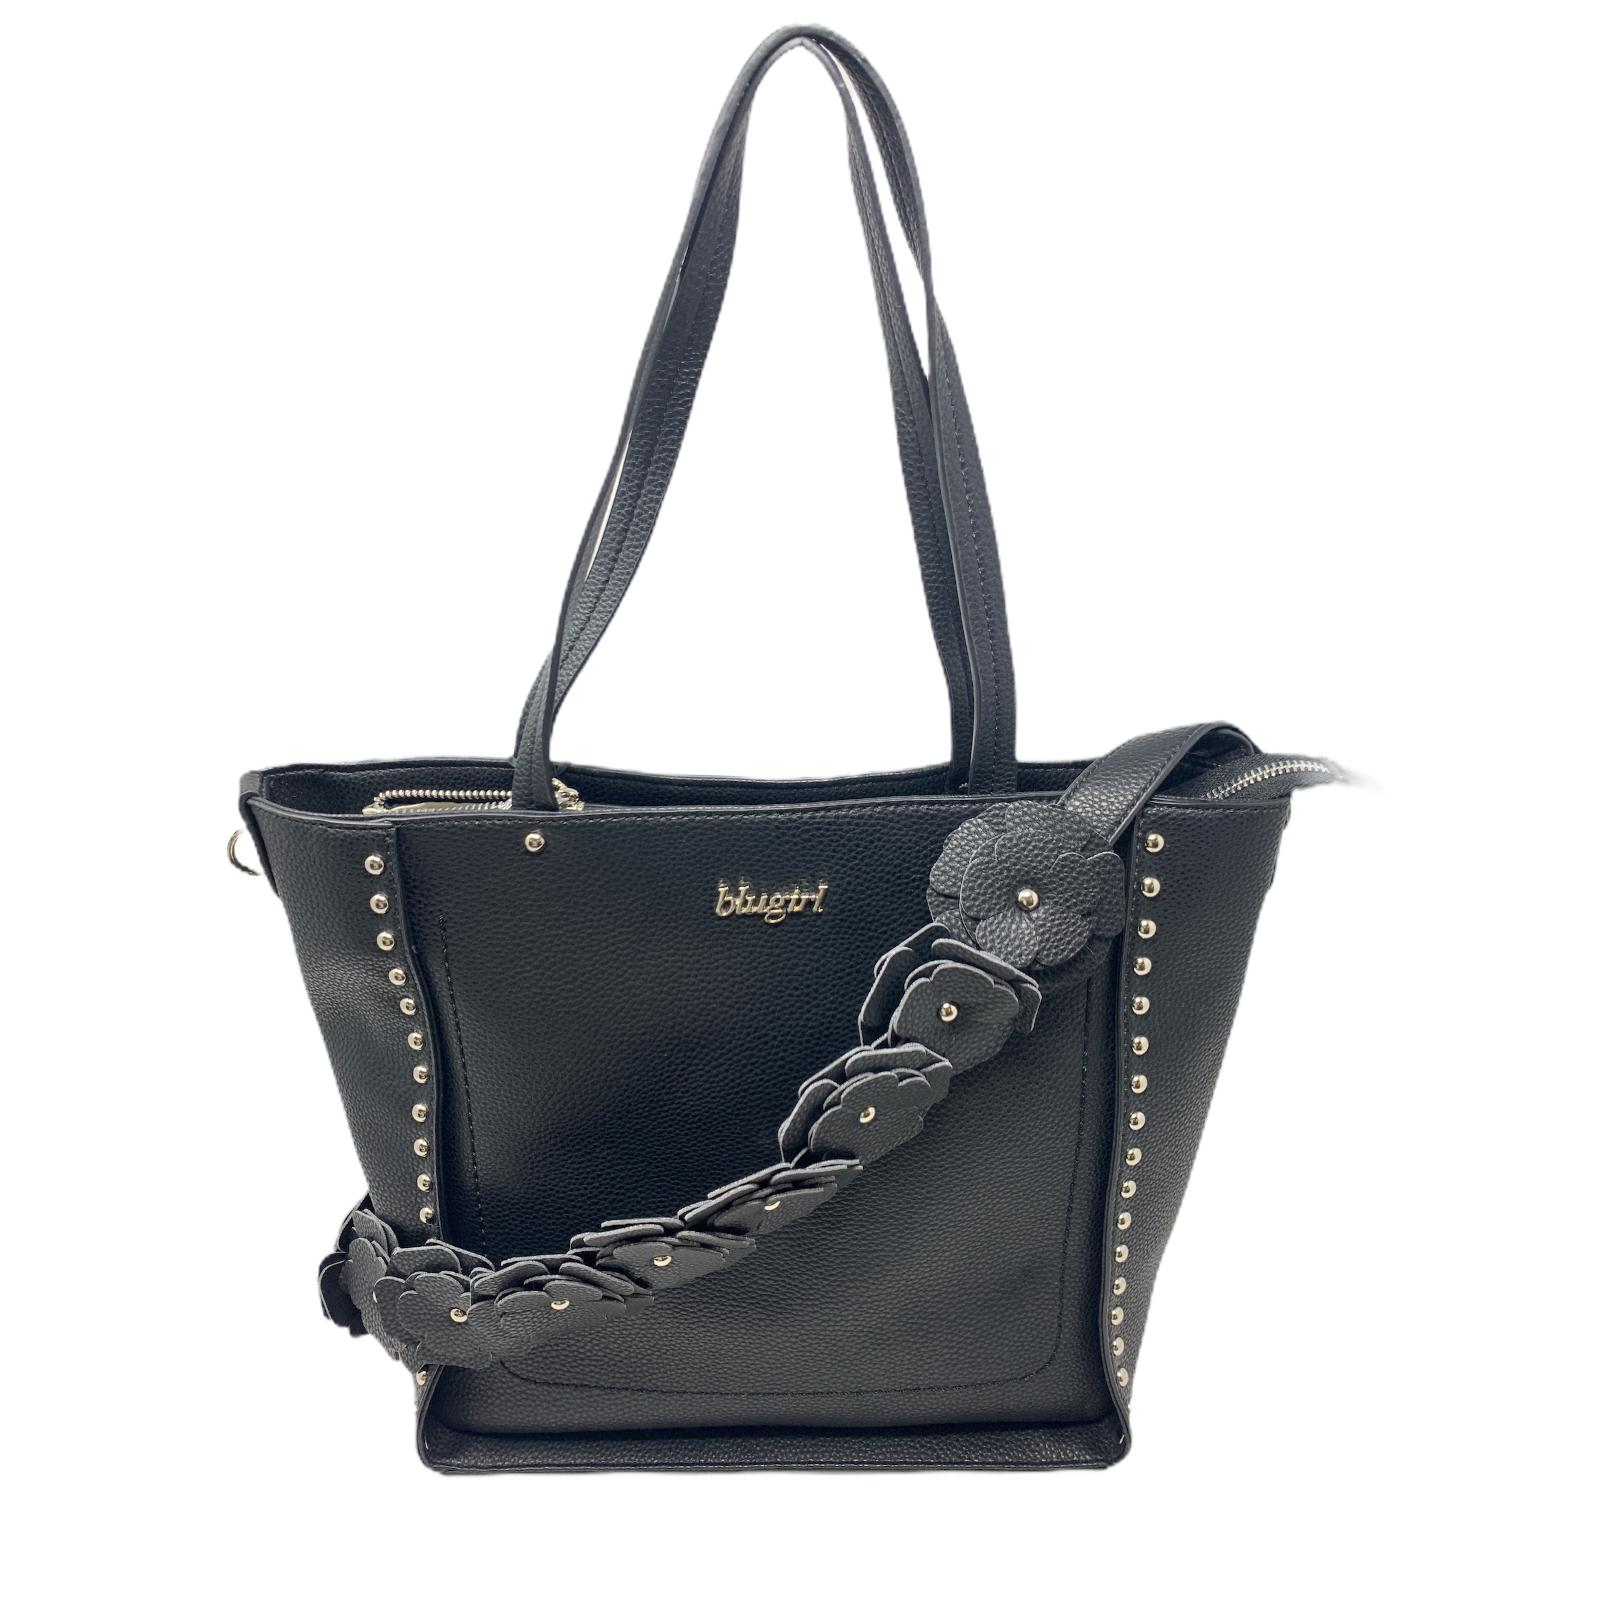 Blugirl Borsa Nera Bag Shopper Shopping  Bag